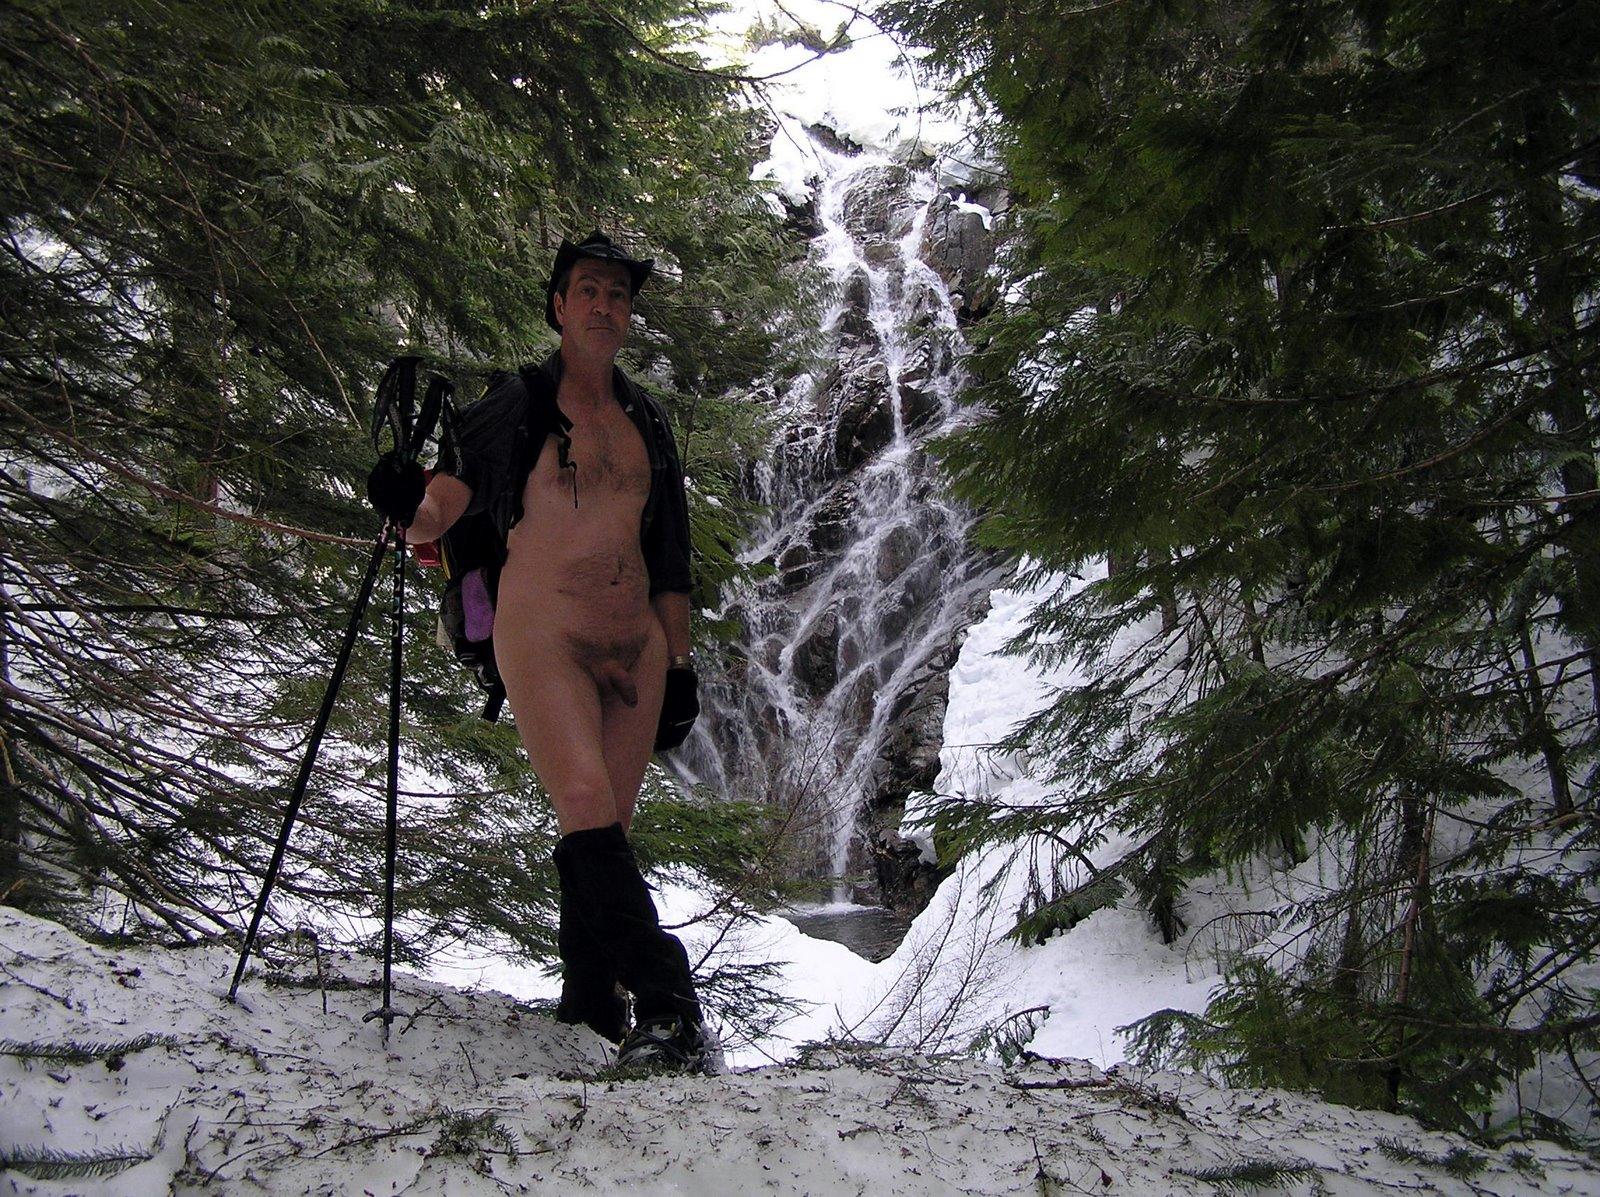 Nude hiking tumblr-6625